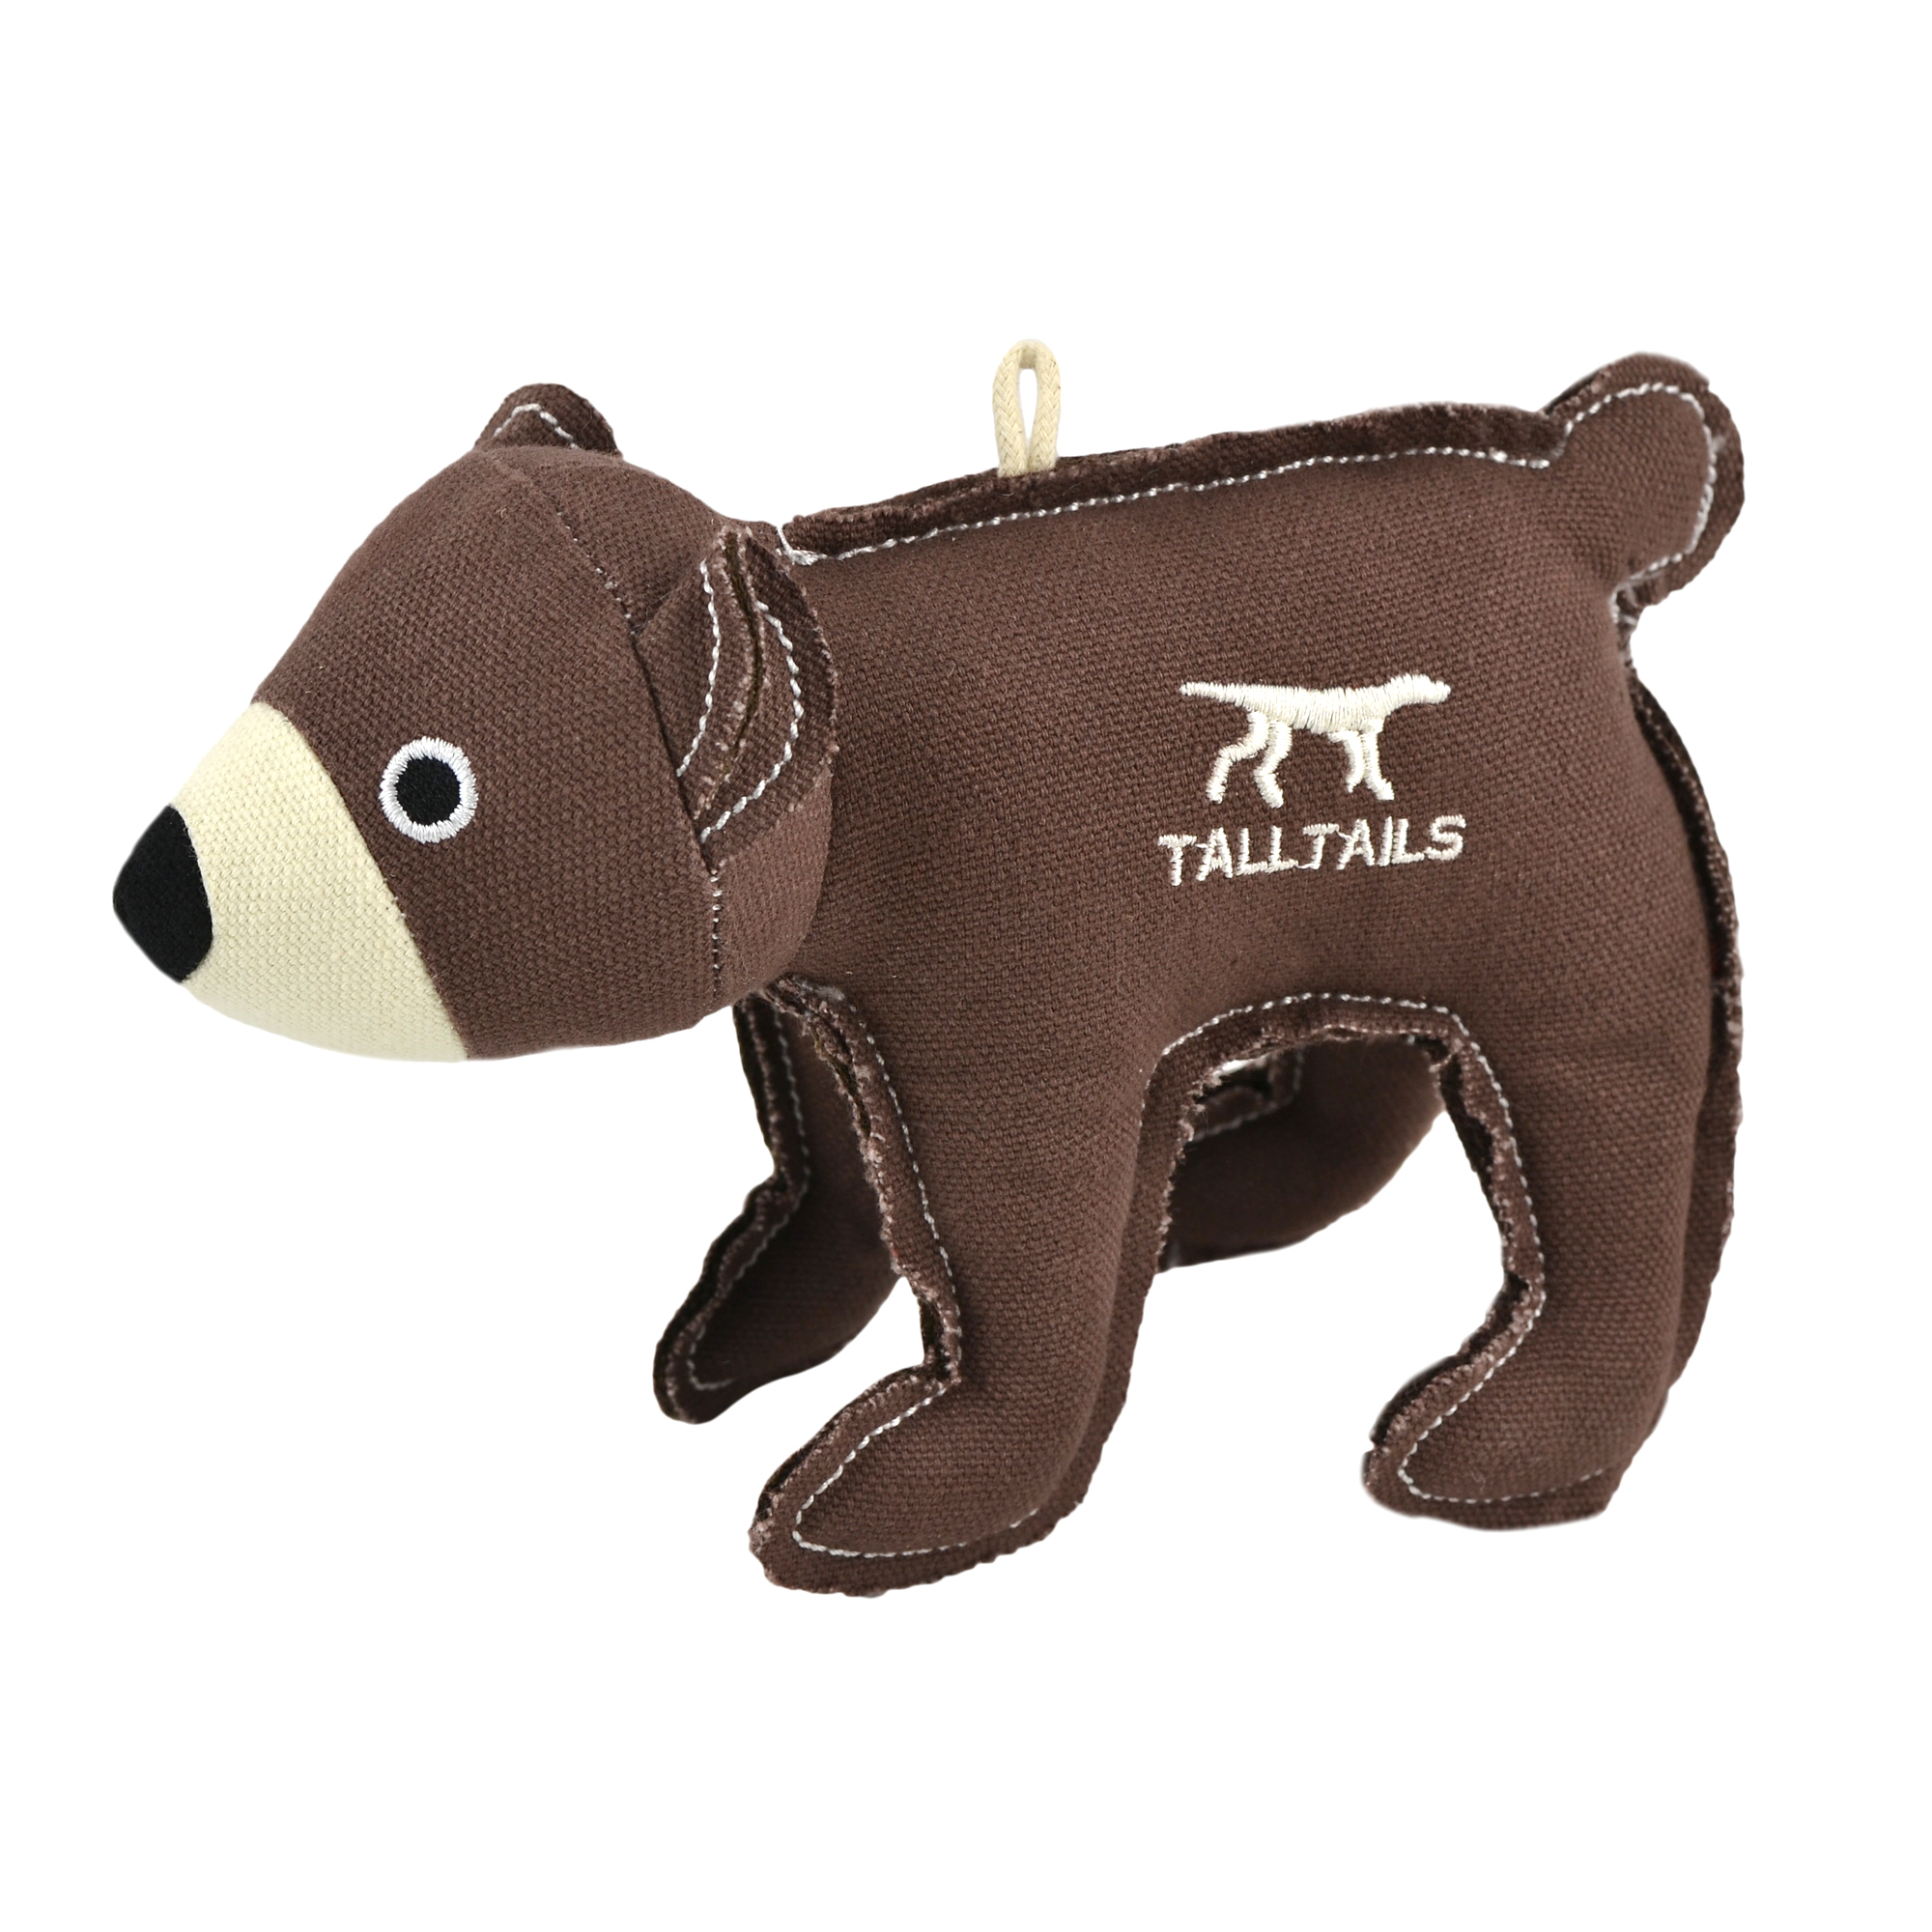 Tall Tails Bear Canvas Dog Squeaker Toy, 5-in (Size: 5-in) Image